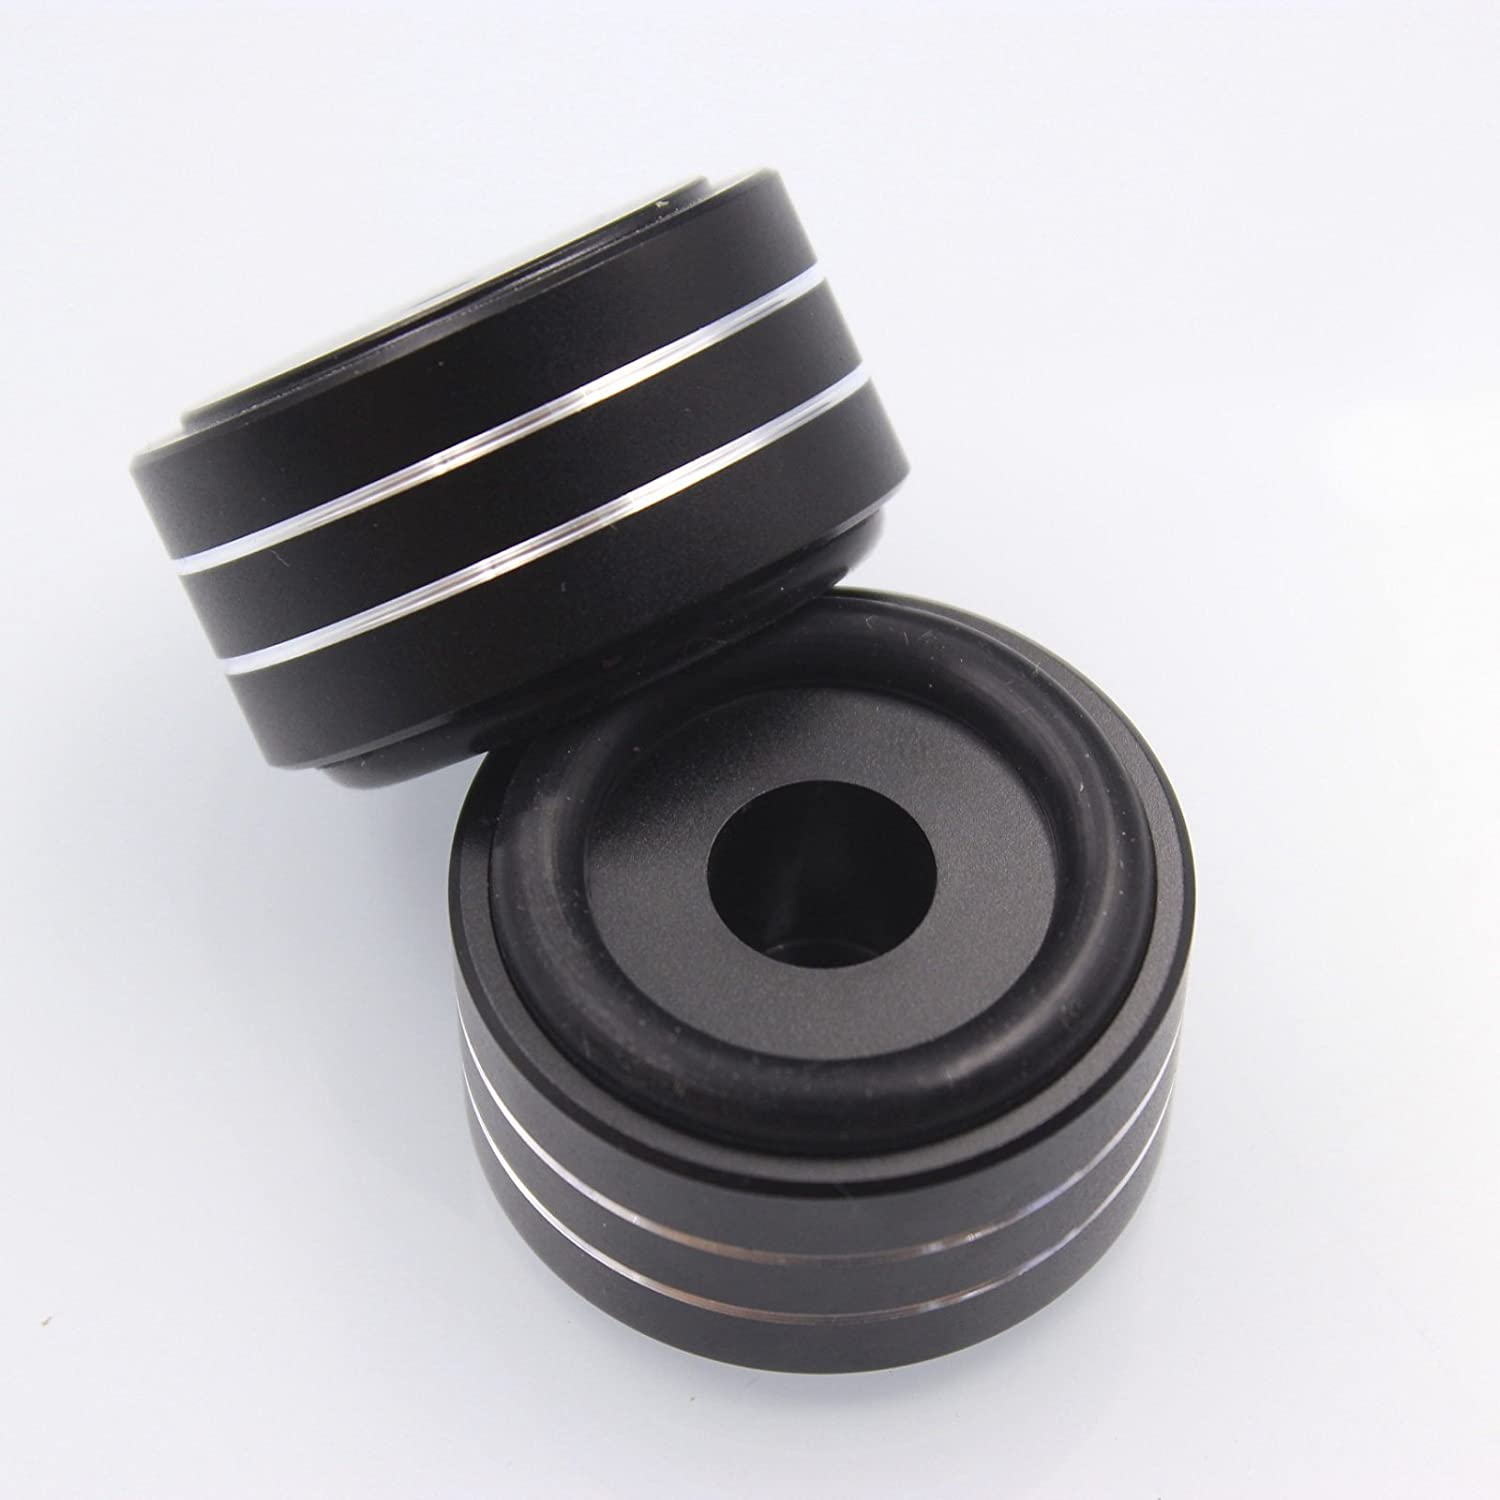 GD-PARTS Machined Solid Full Aluminum Speaker Isolation Feet Stand Pad For Amplifiers DAC Cabinet 40x20mm Black Set of 4